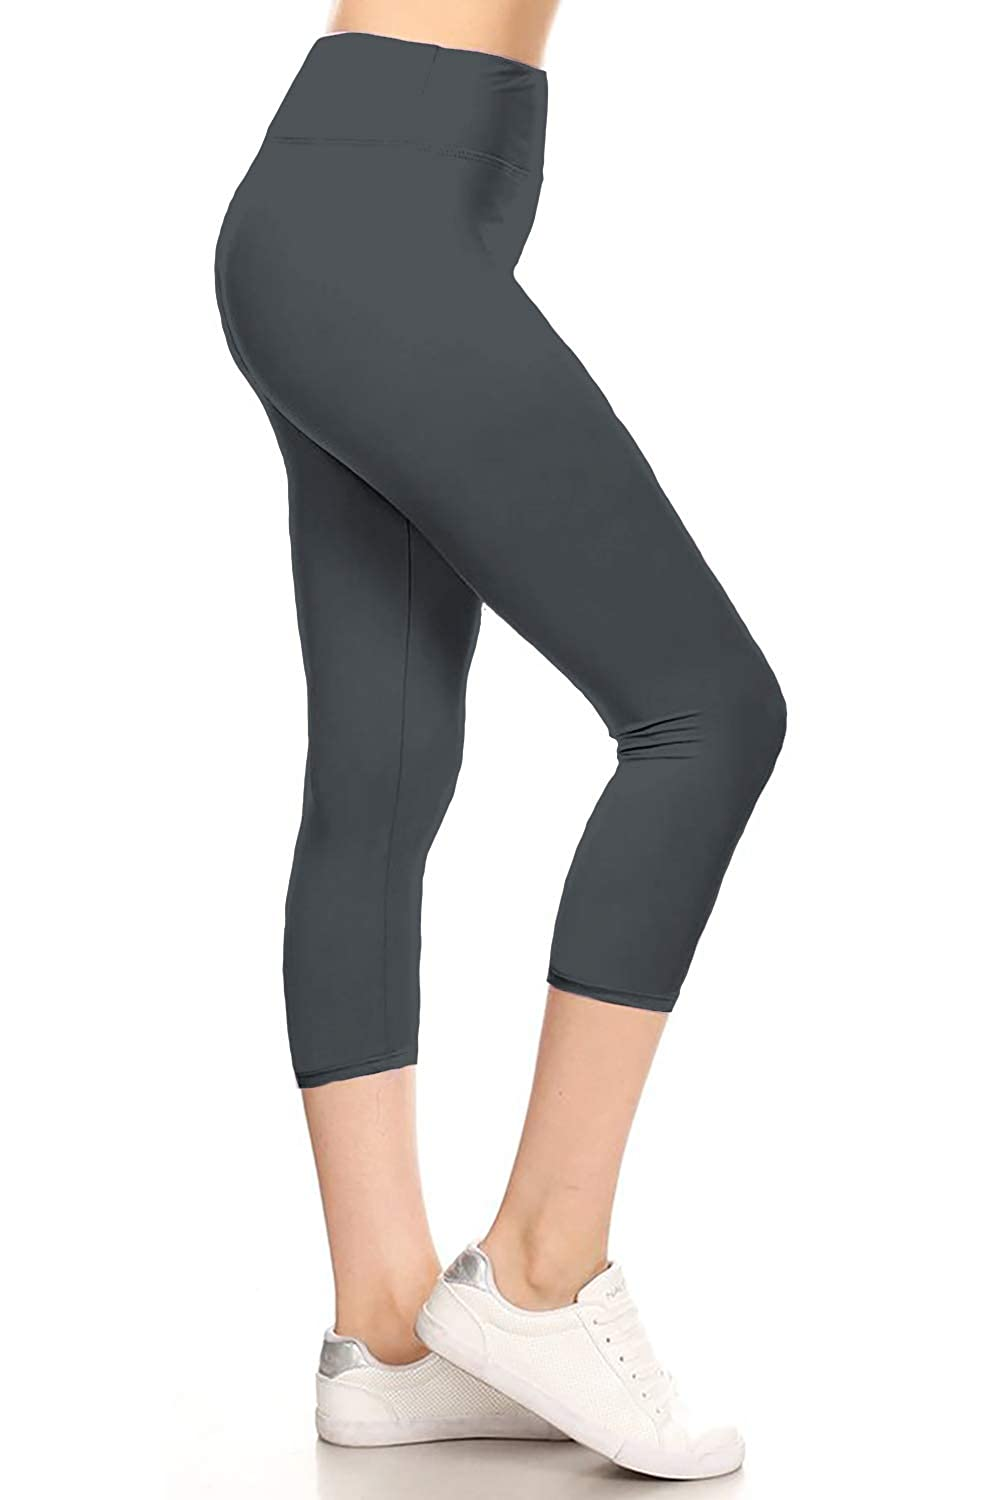 Leggings Depot High Waisted Yoga Capri Print Leggings -Soft & Slim (Yoga Capri Charcoal Gray, Plus Size (L-2X / Size 12-20))